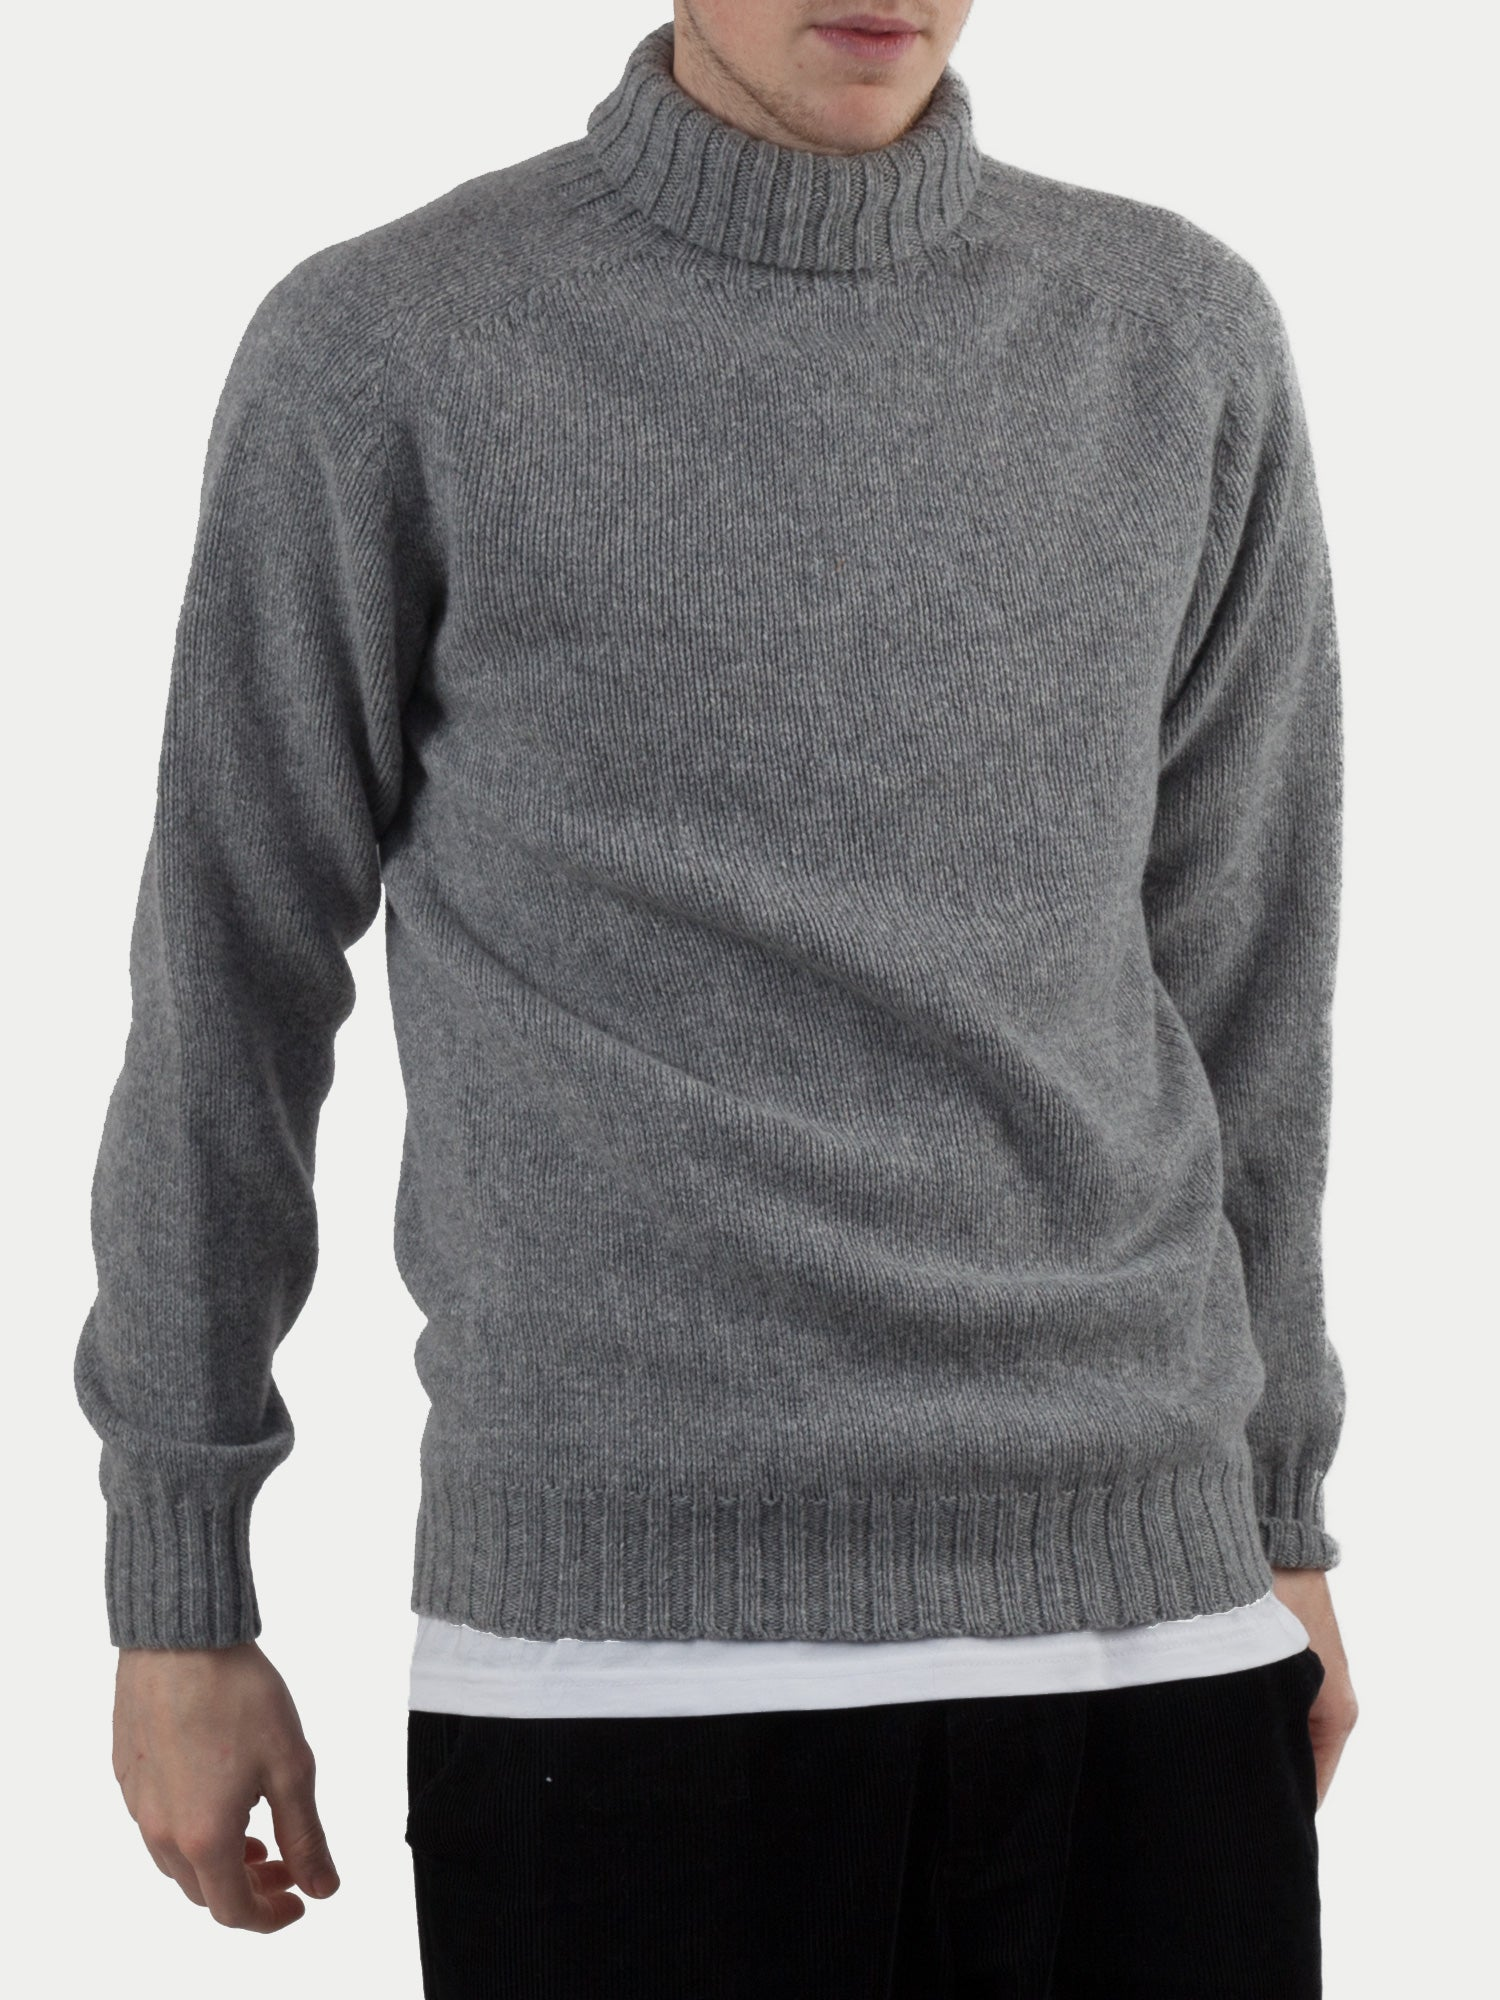 SIXES Delaney Roll Neck Jumper (Flannel Grey) m1